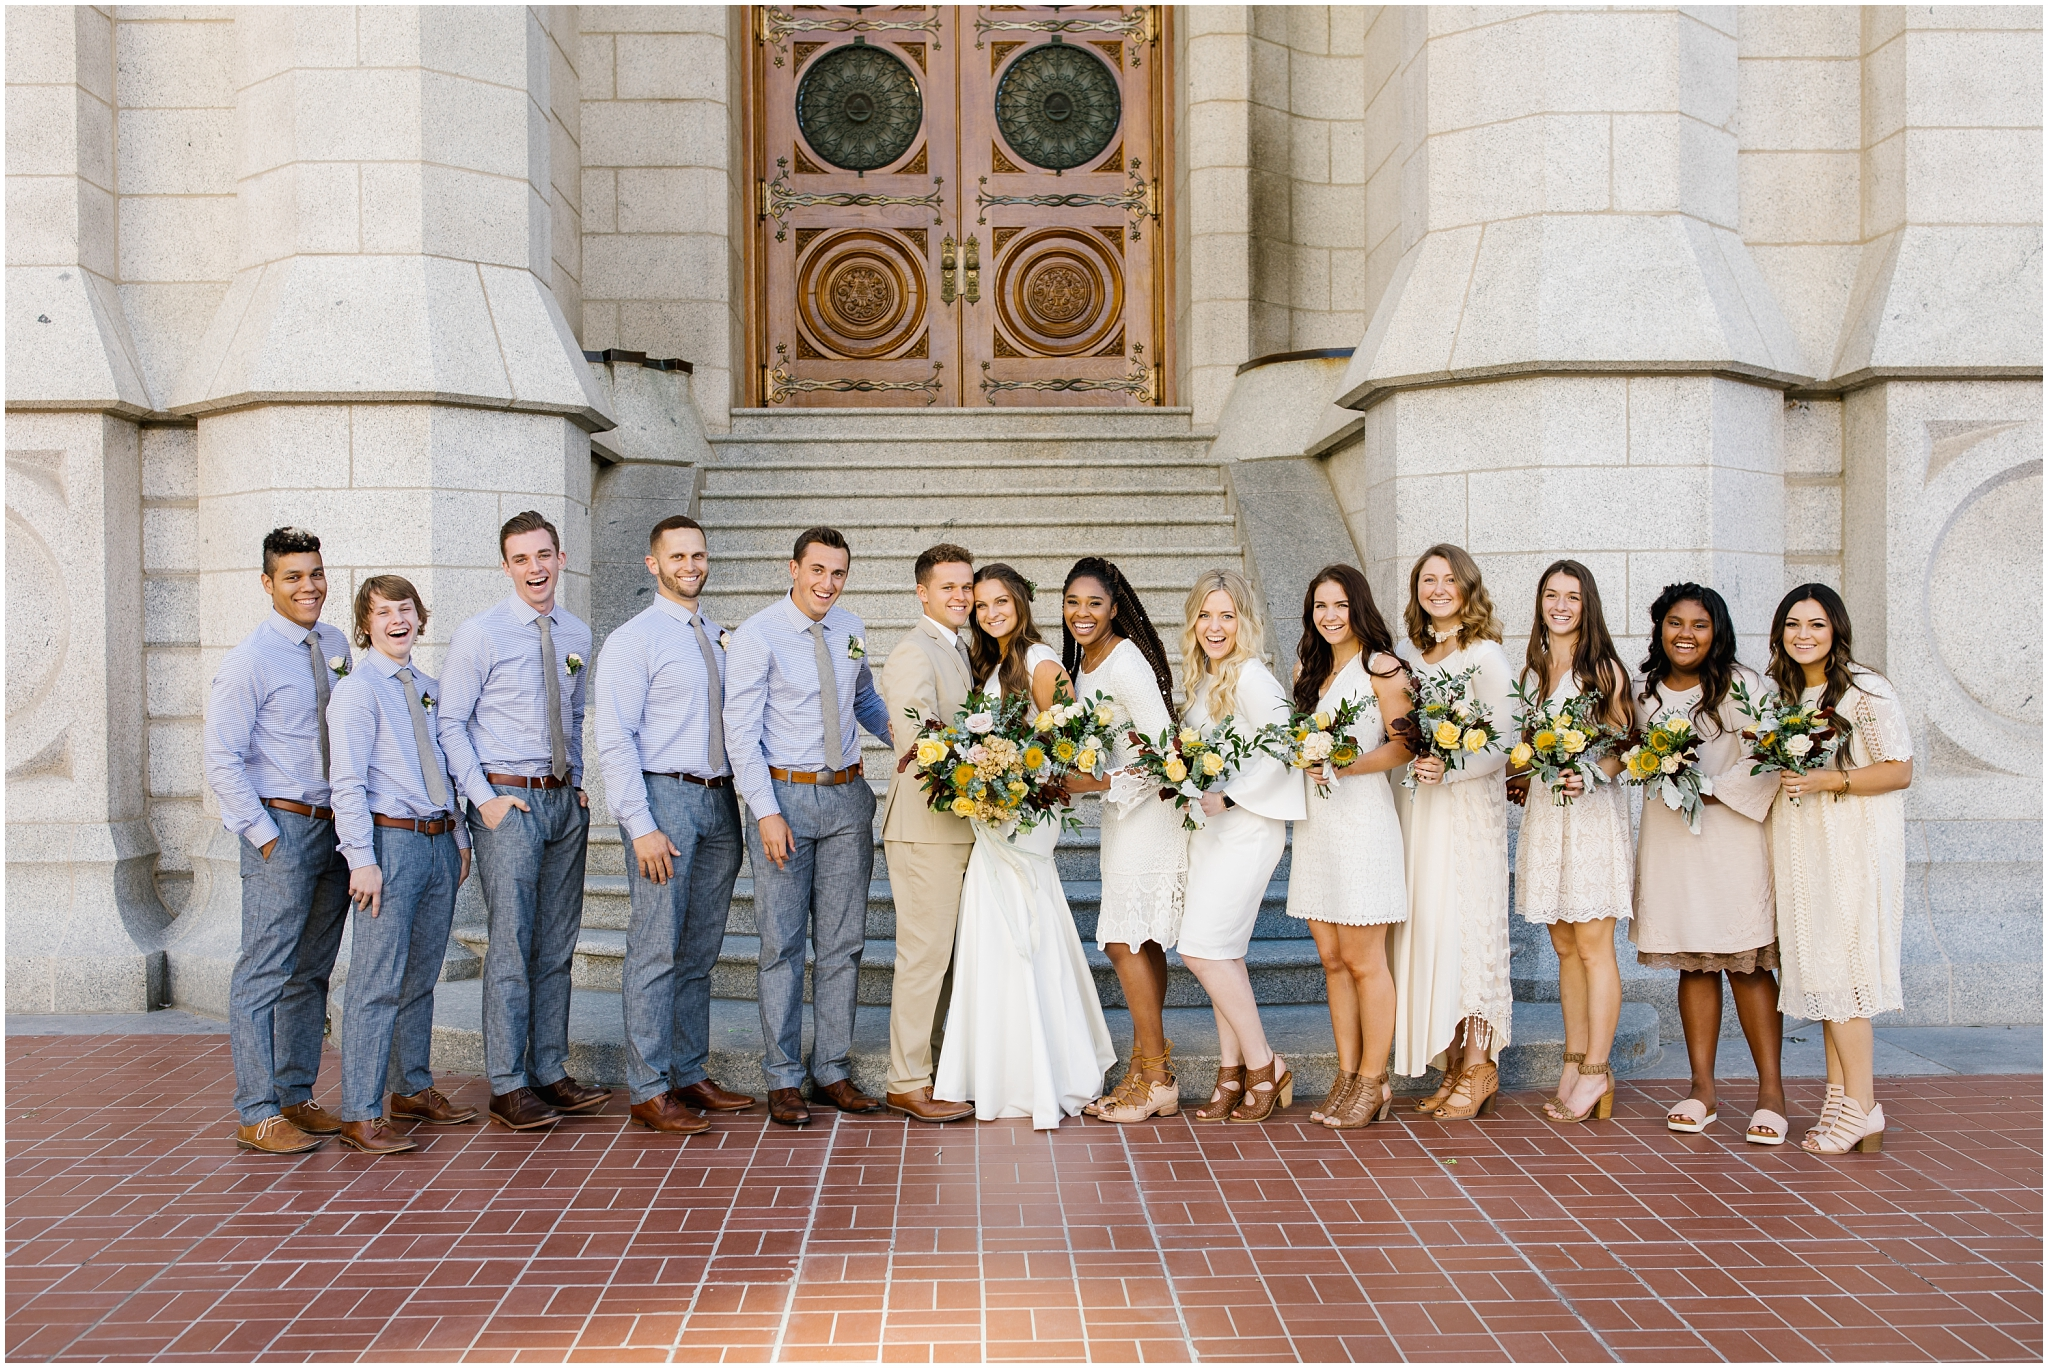 JC-Wedding-146_Lizzie-B-Imagery-Utah-Wedding-Photographer-Salt-Lake-City-Temple-Joseph-Smith-Memorial-Building-Reception.jpg